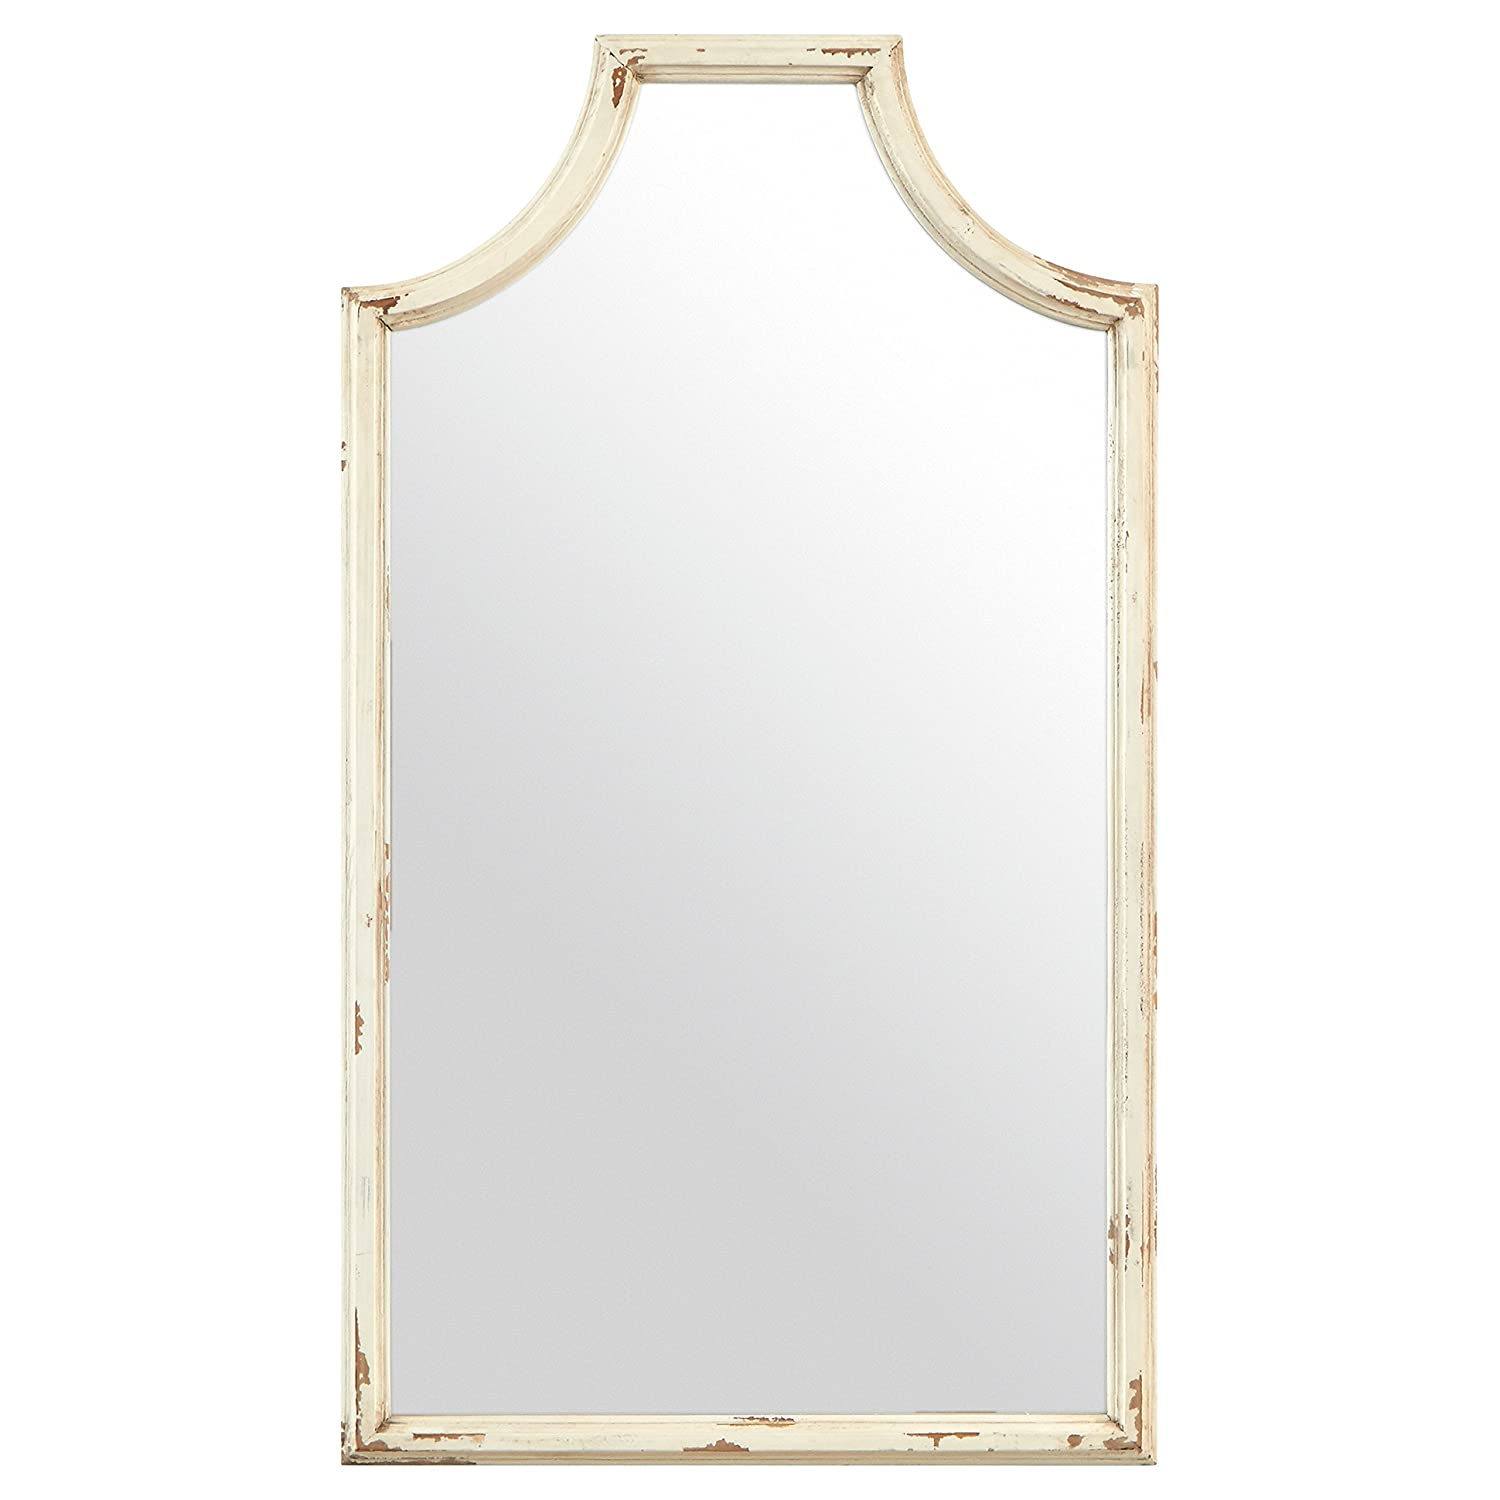 "Stone & Beam Curved Vintage-Look Wood Frame Mirror, 28""H, White"